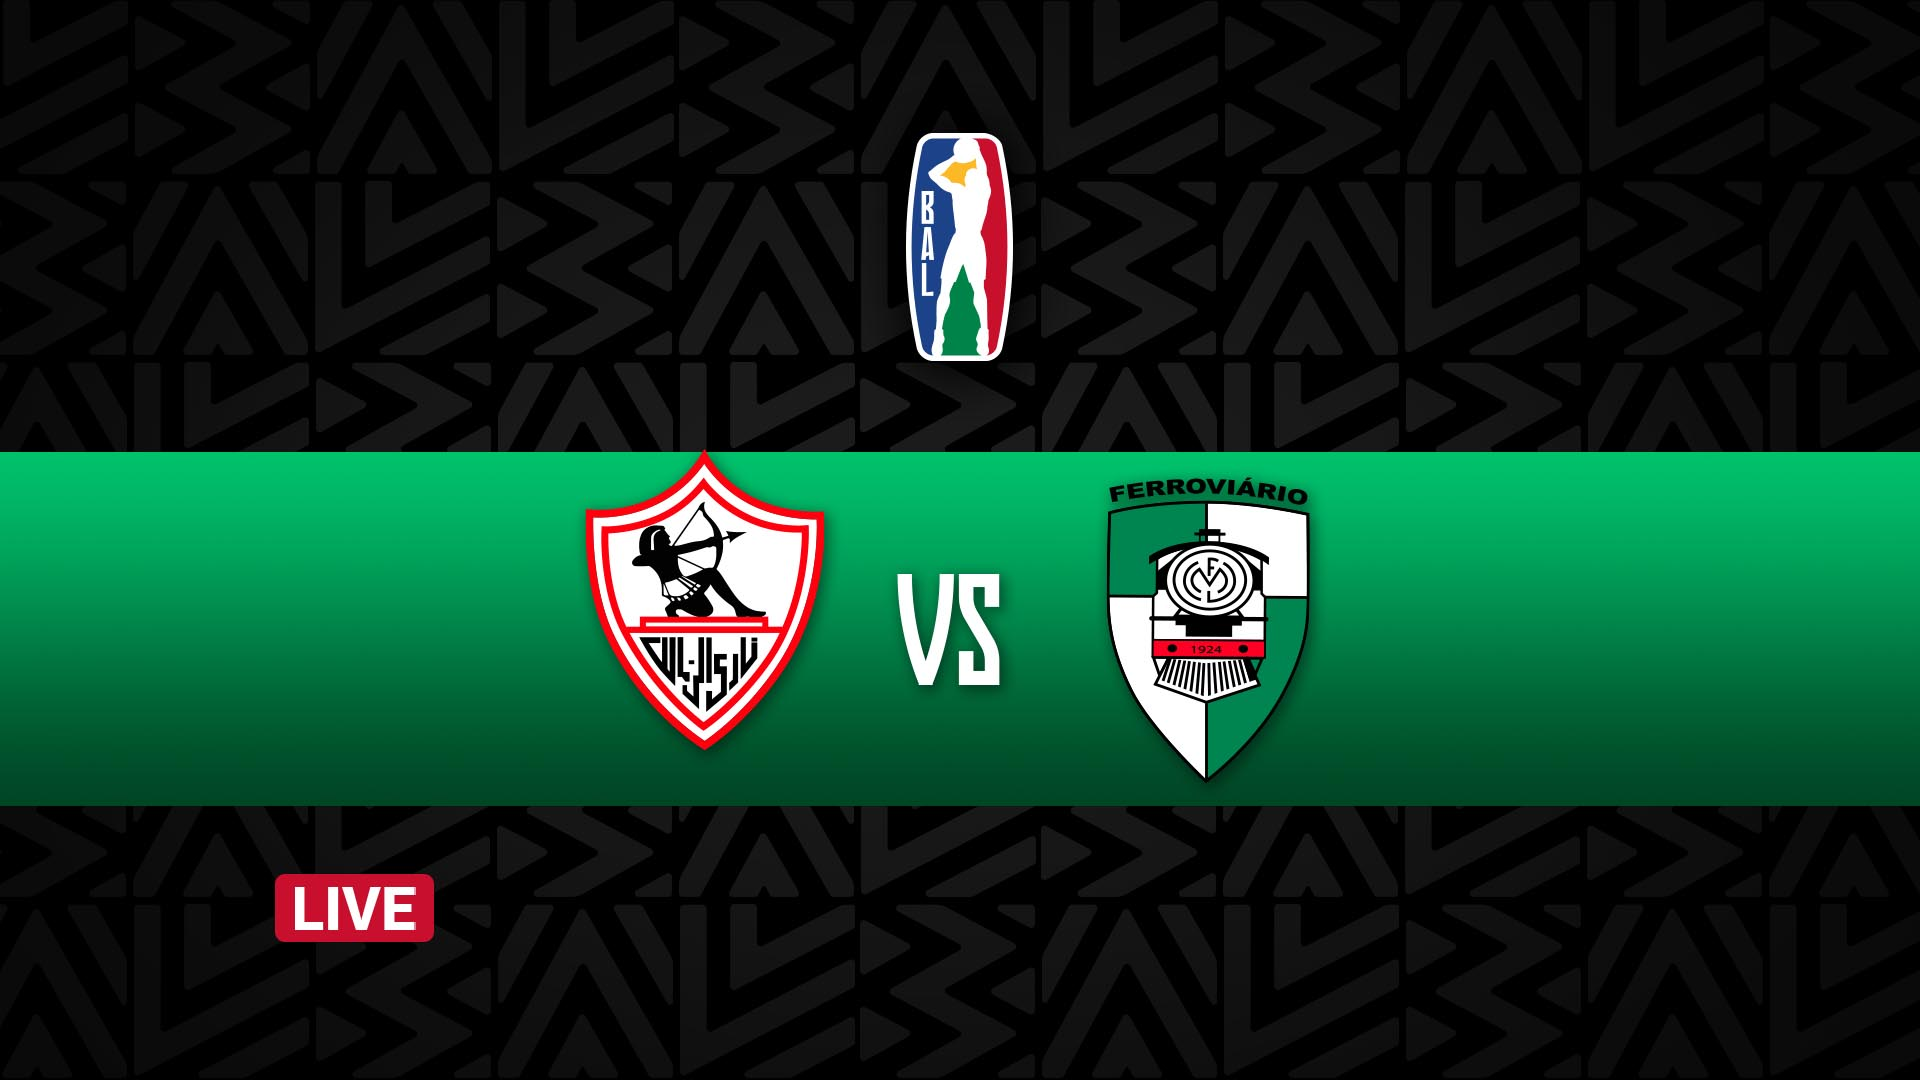 BAL: Zamalek, Ferroviario de Maputo To Face In Group C